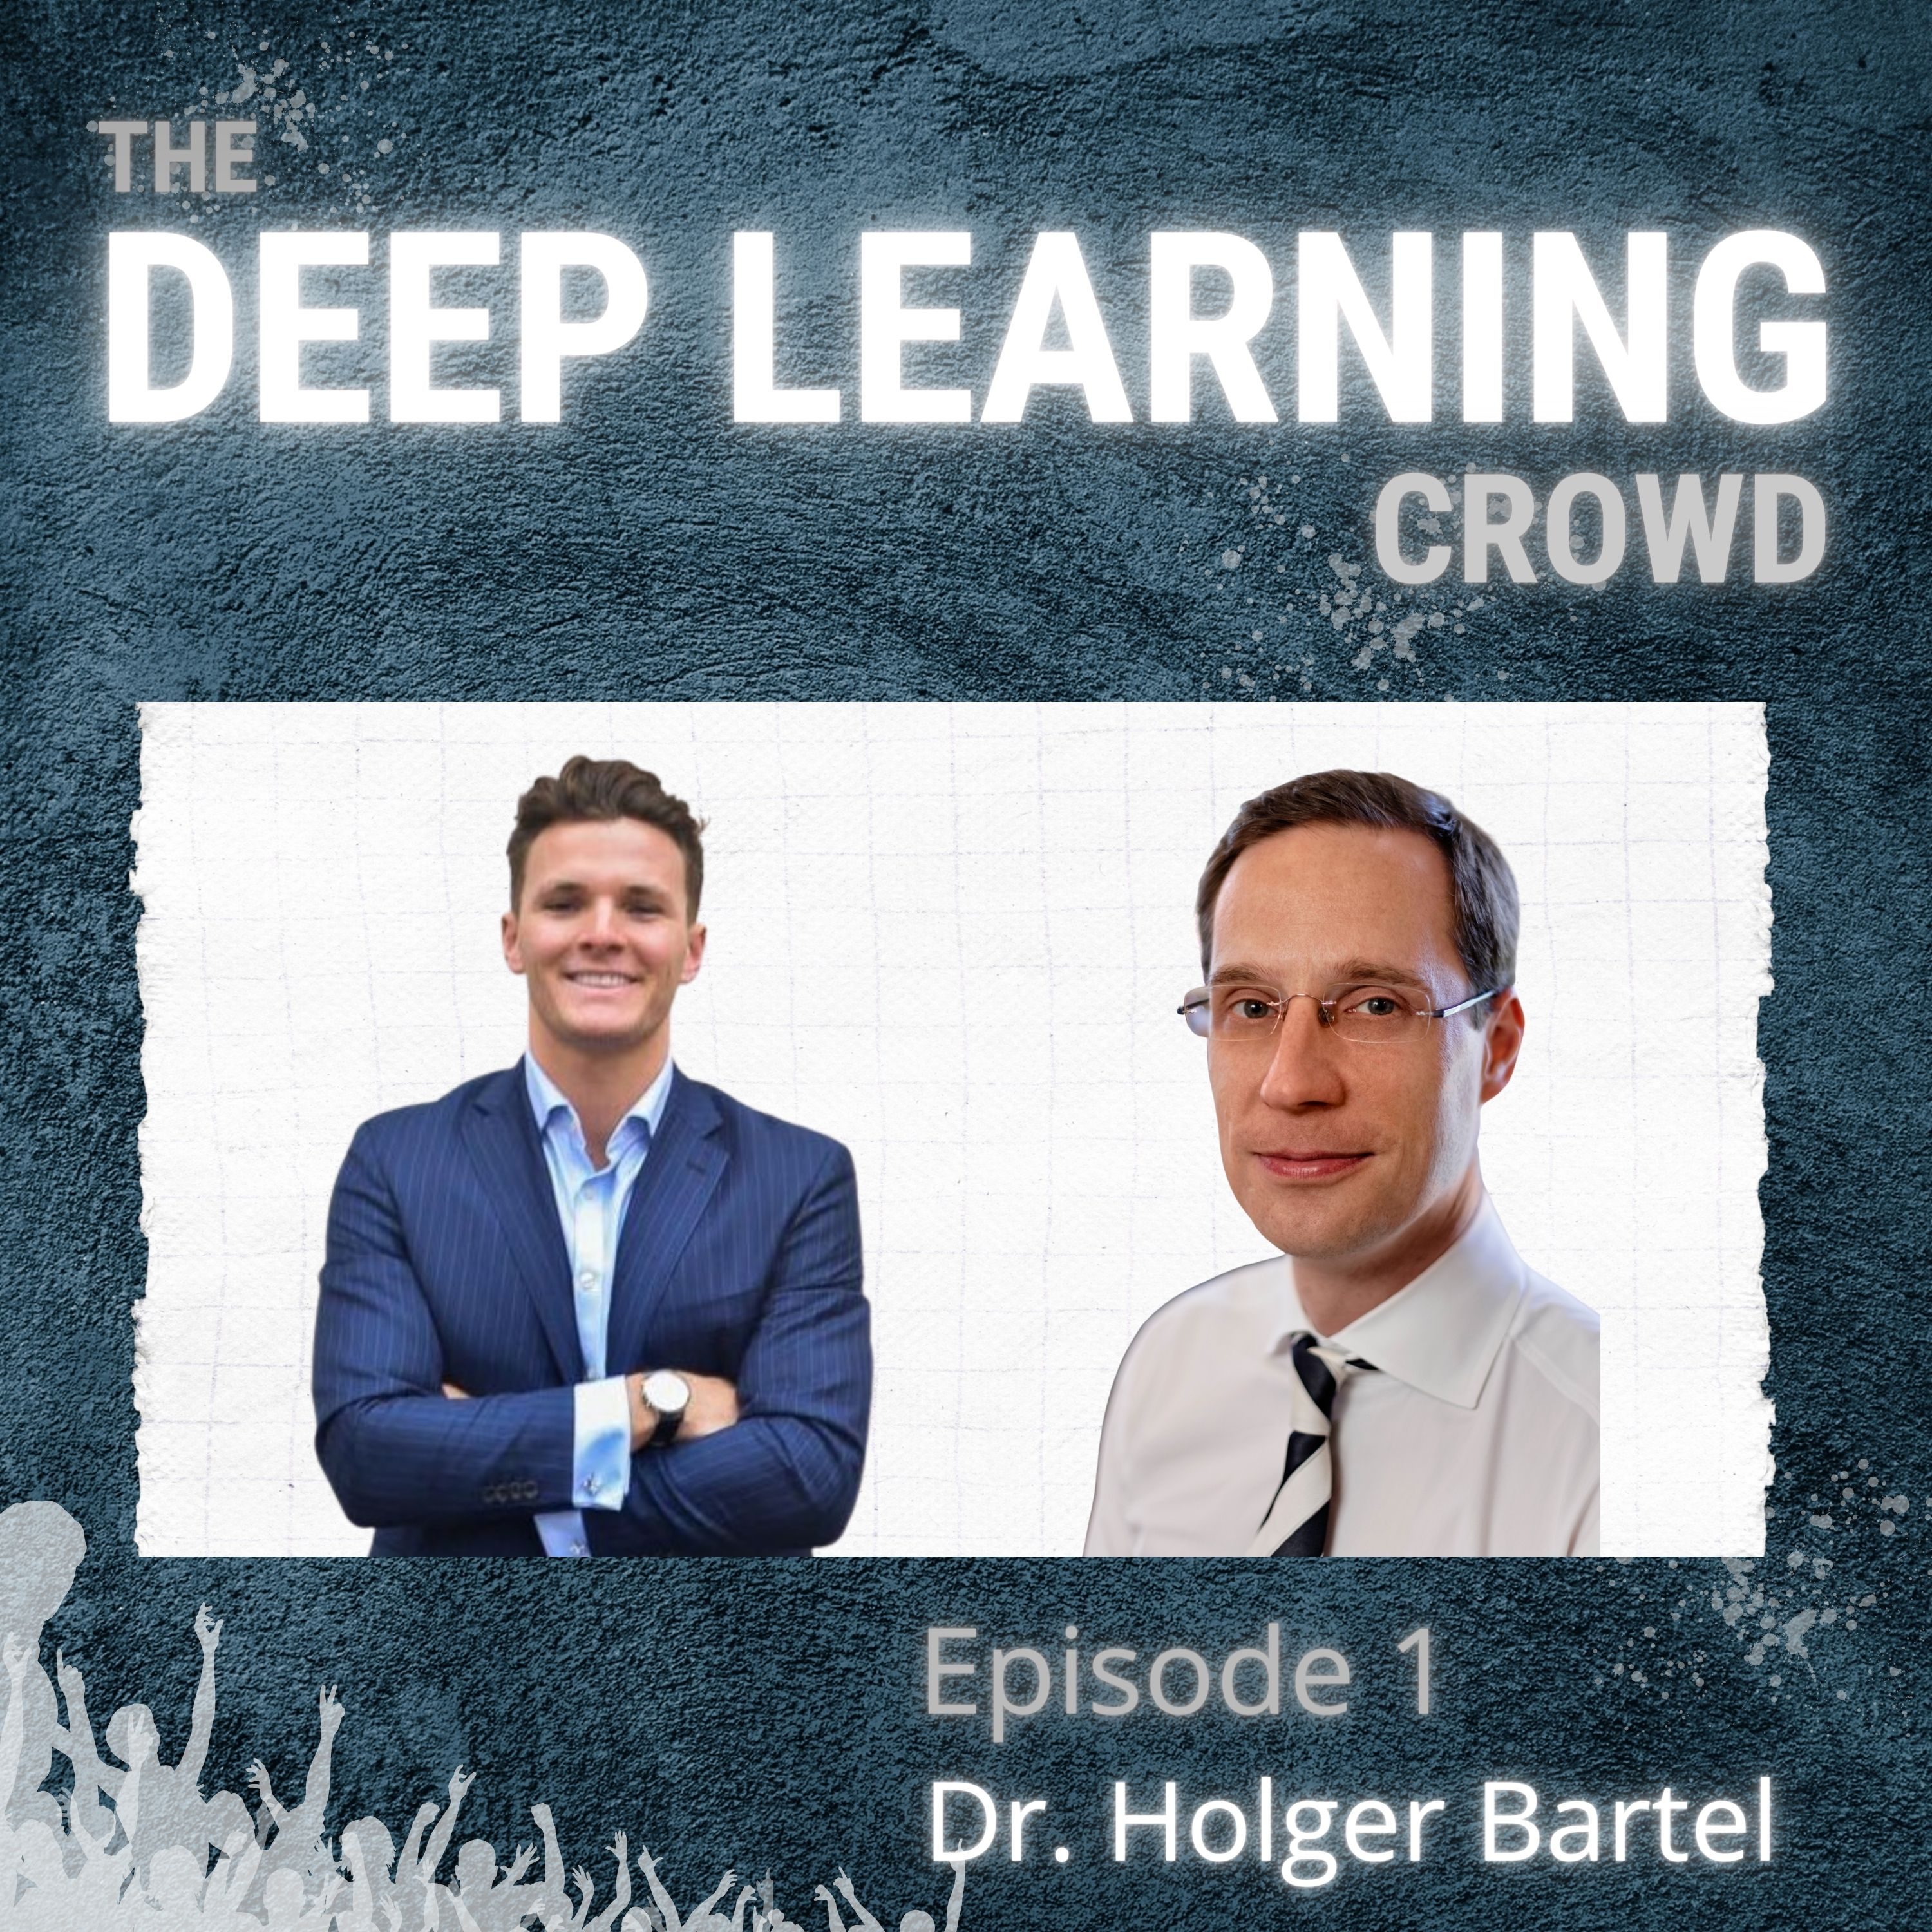 Artwork for podcast The Deep Learning Crowd